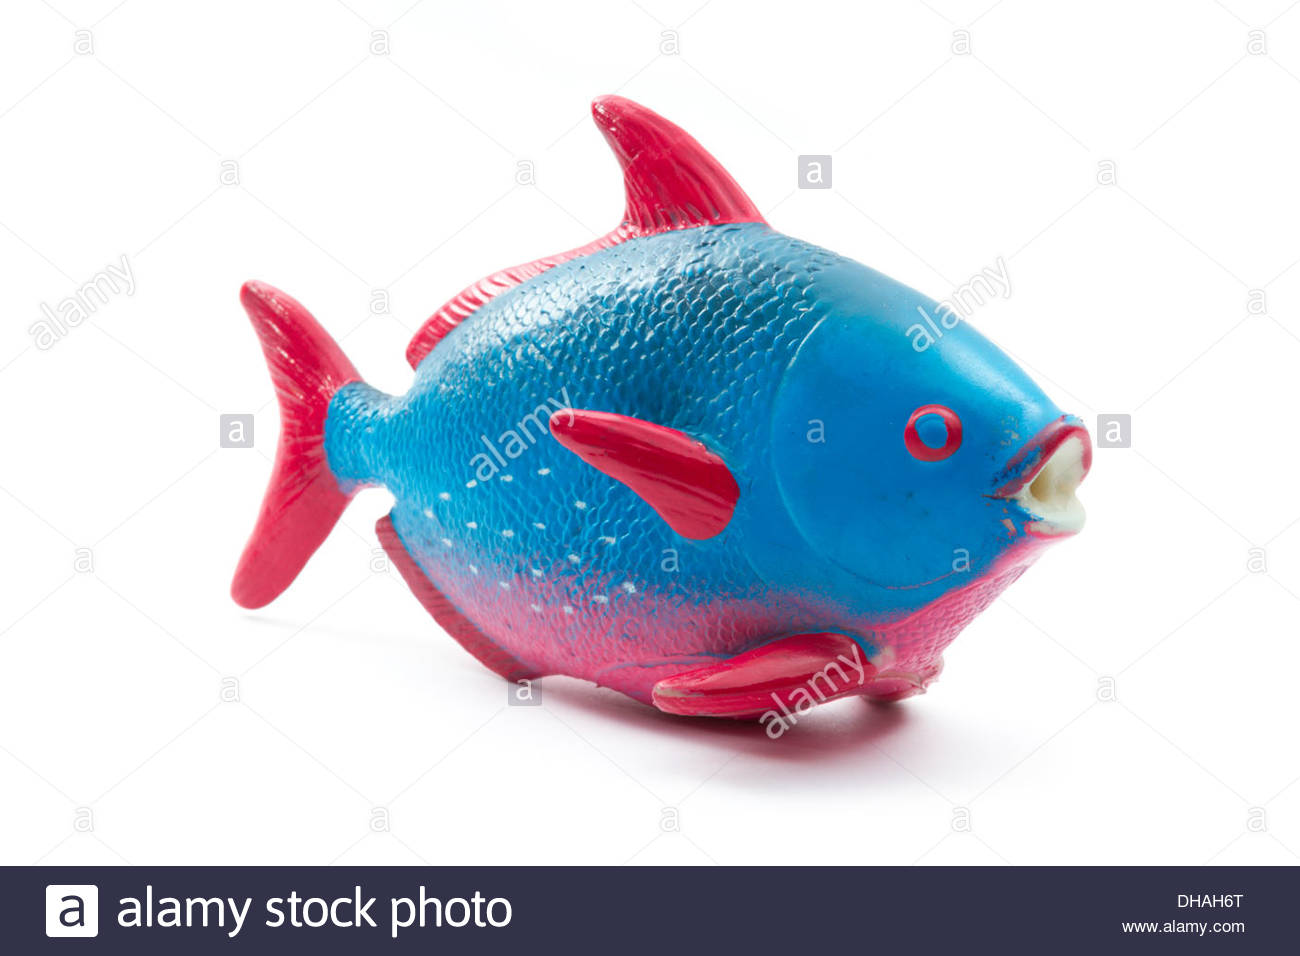 Fish Toy Plastic Colorful On Stock Photos & Fish Toy Plastic ...